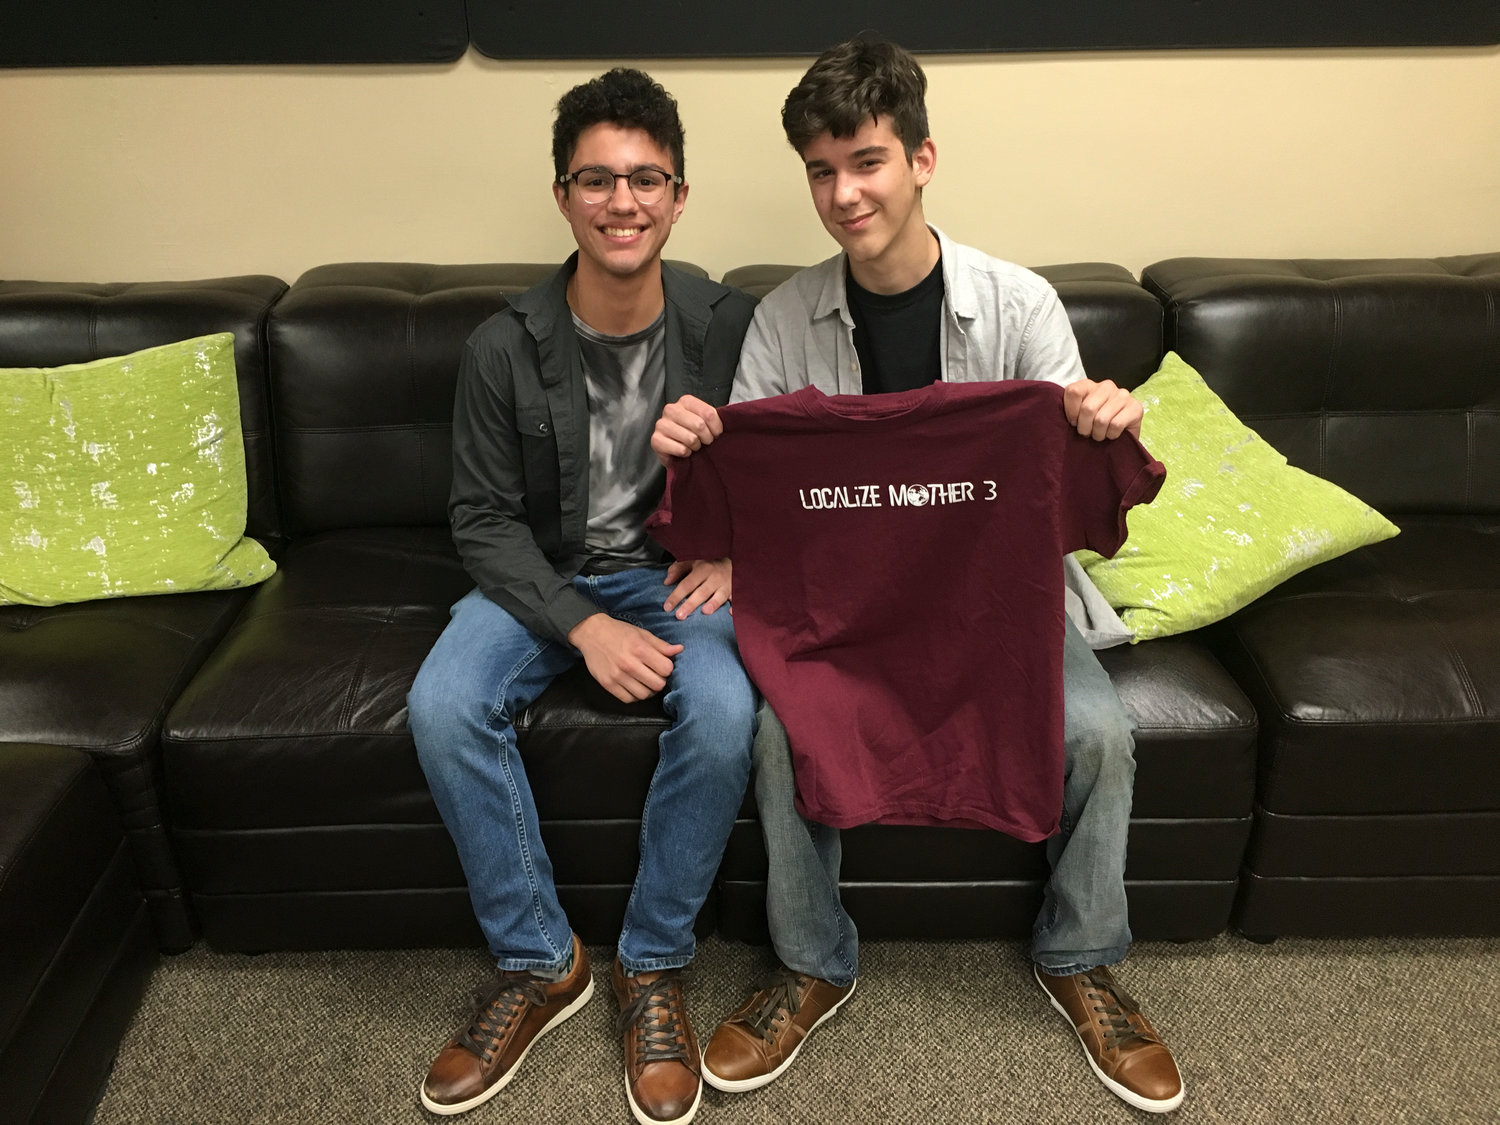 Wantagh High School sophomores Cristian Barberio, left, and Dominick Rossi recently created their own custom clothing company, Gateway Apparel.